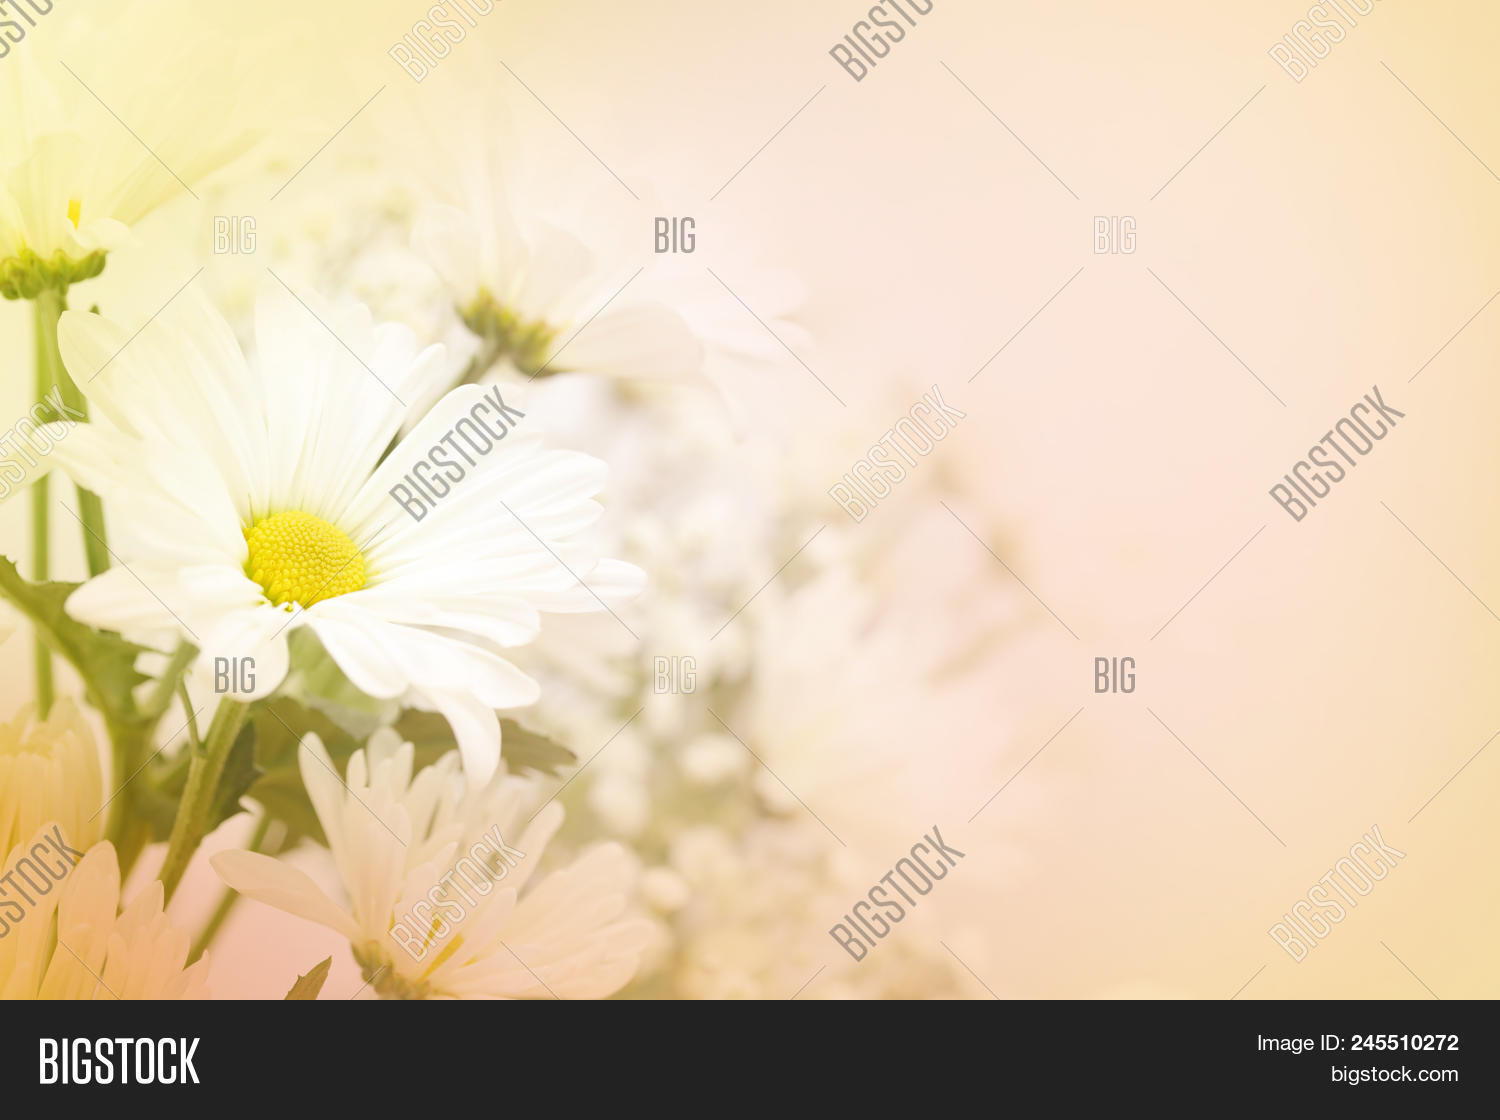 A beautiful soft white daisy flower on a blurred background in pink, yellow and green.  Large text area on the right side.